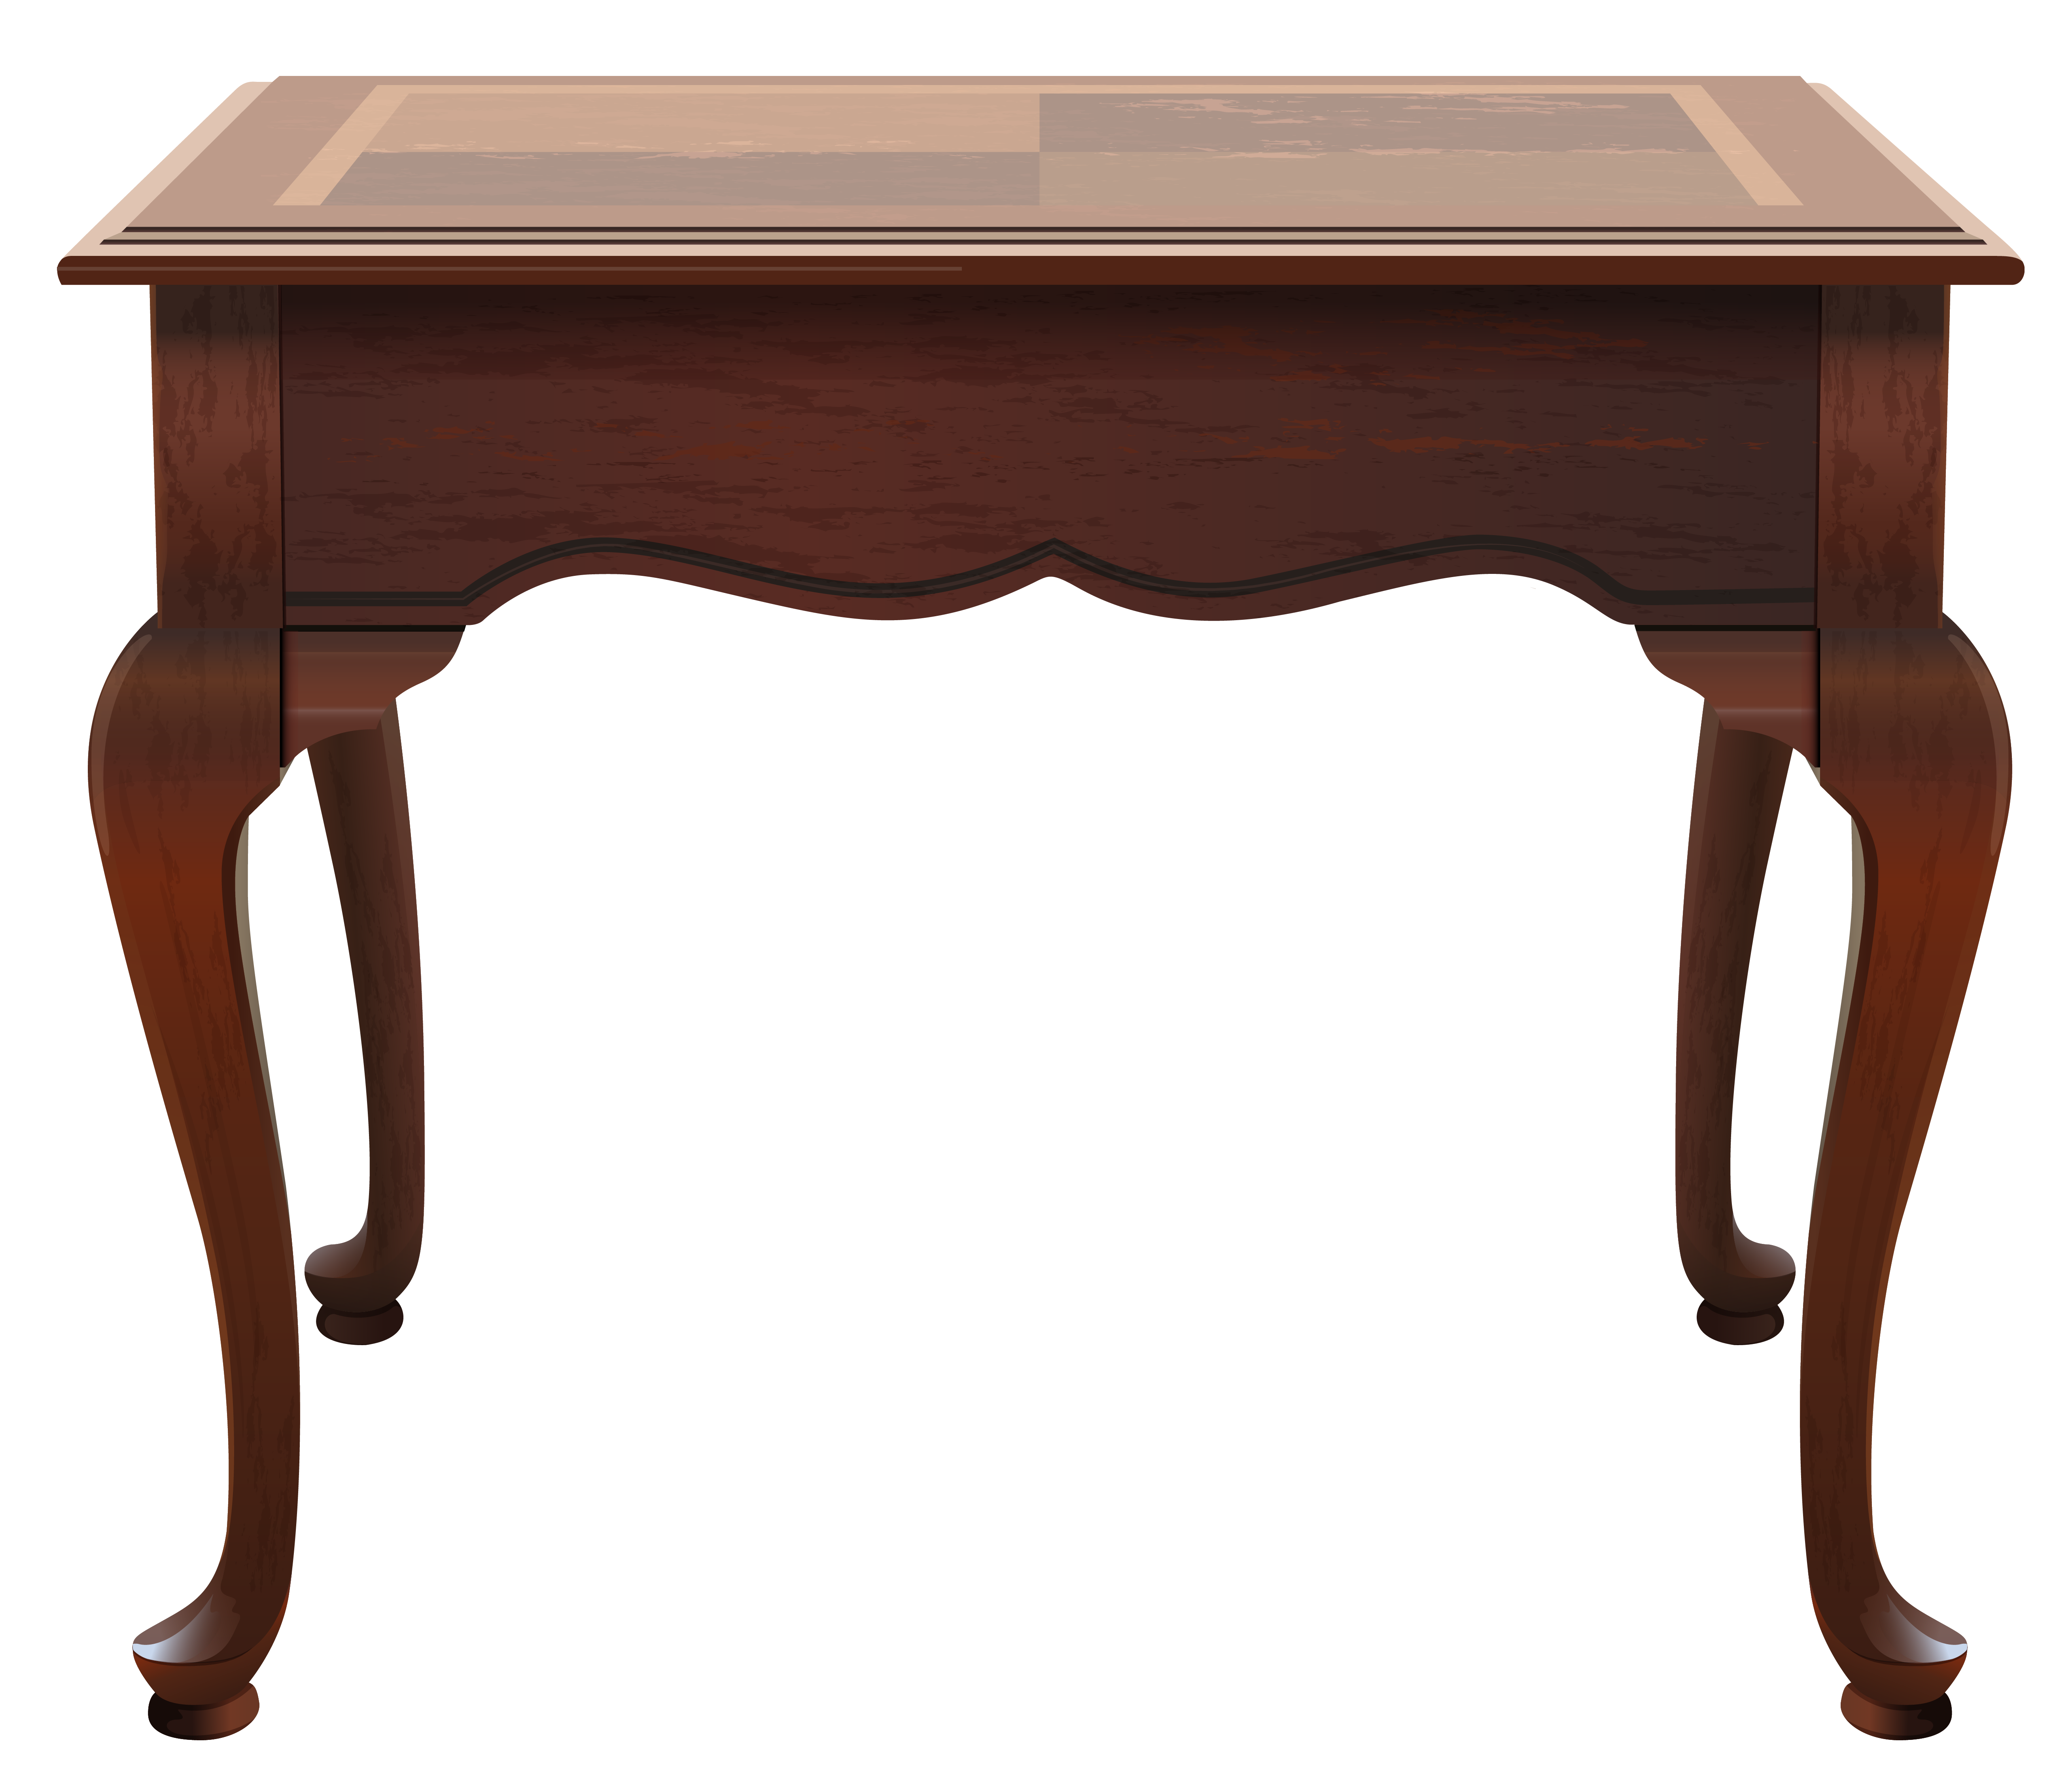 Cabinet png image gallery. Furniture clipart victorian furniture